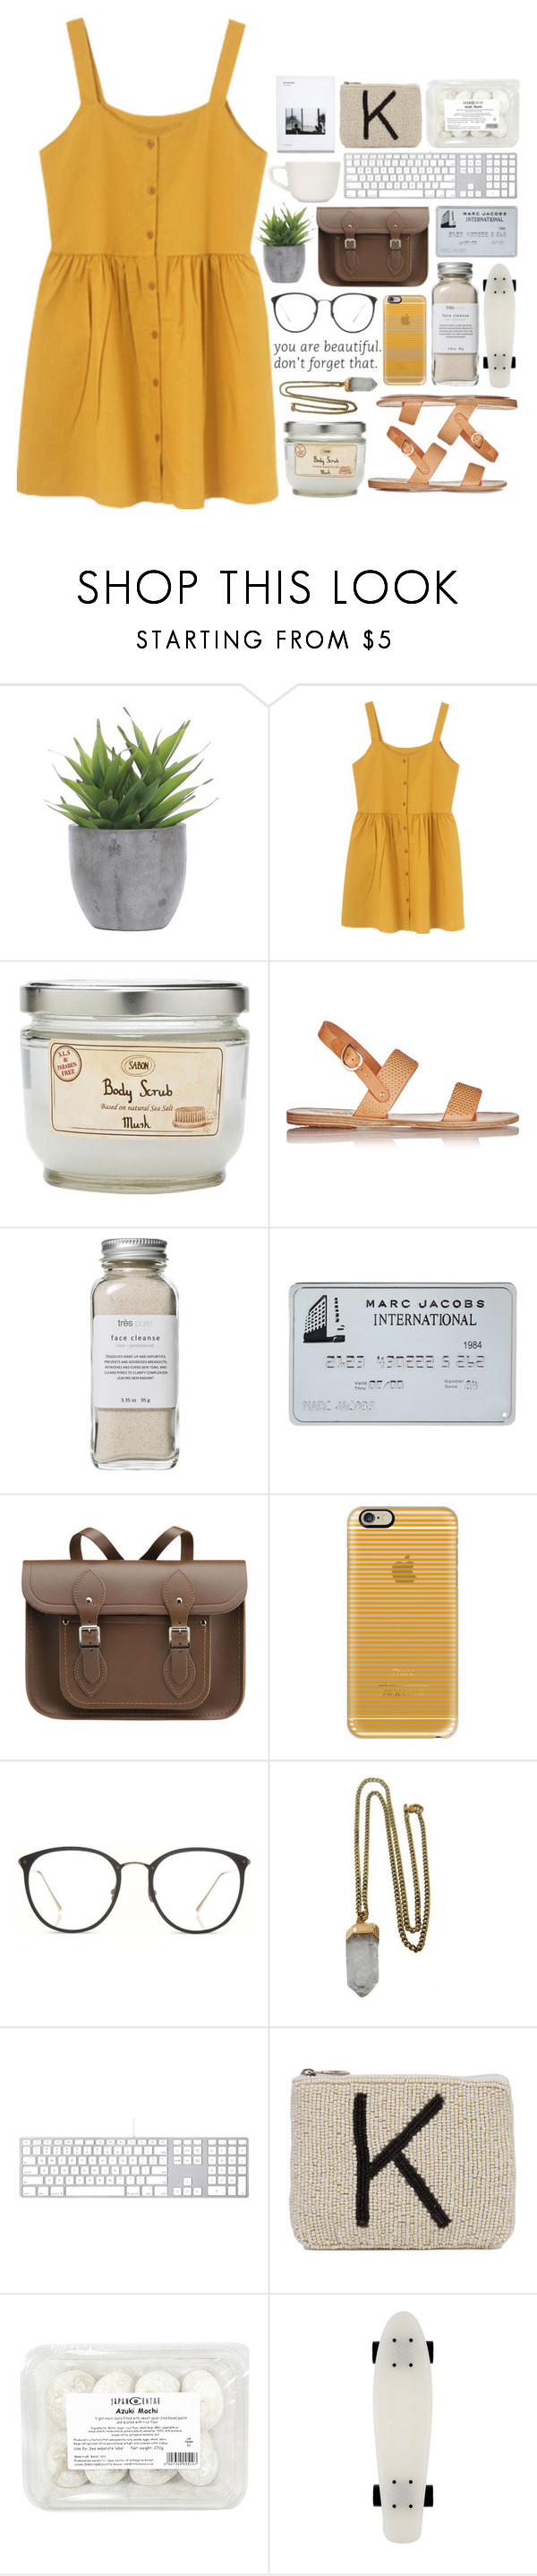 """""""Sin título #109"""" by marinaestepa ❤ liked on Polyvore featuring Lux-Art Silks, Ancient Greek Sandals, Très Pure, The Cambridge Satchel Company, Casetify, Linda Farrow, Lacey Ryan, Akira Black Label and iittala"""